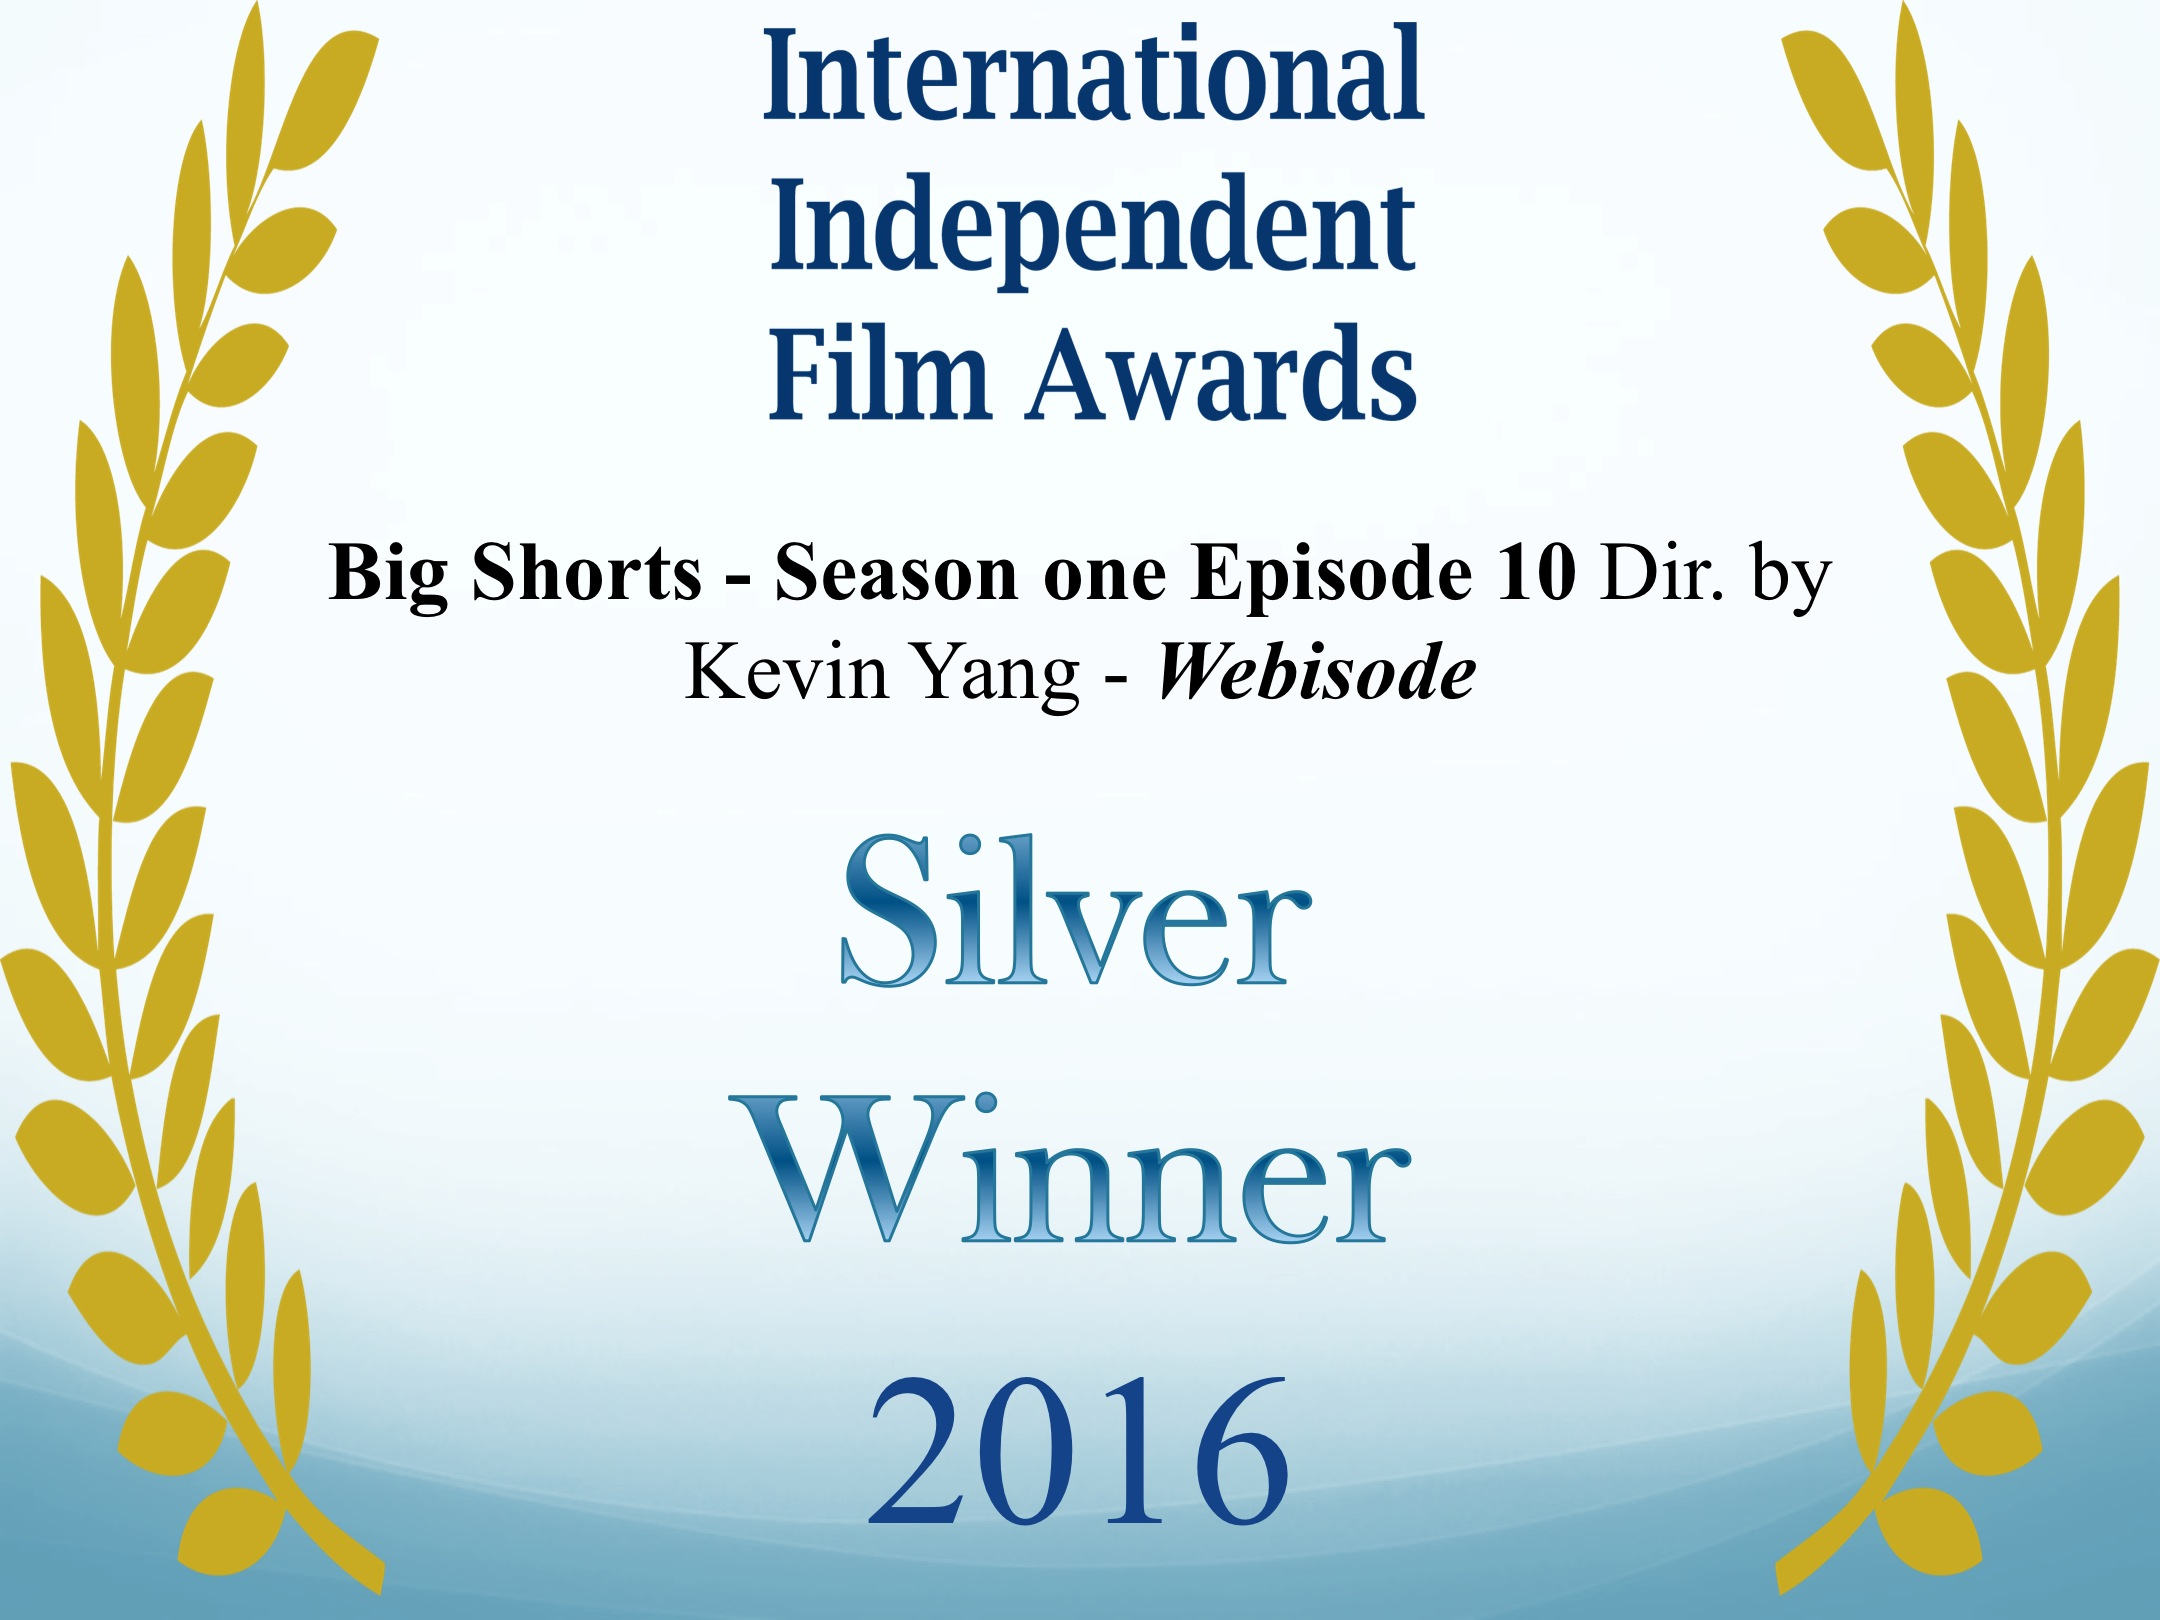 big-shorts-season-one-episode-10-dir-by-kevin-yang-webisode